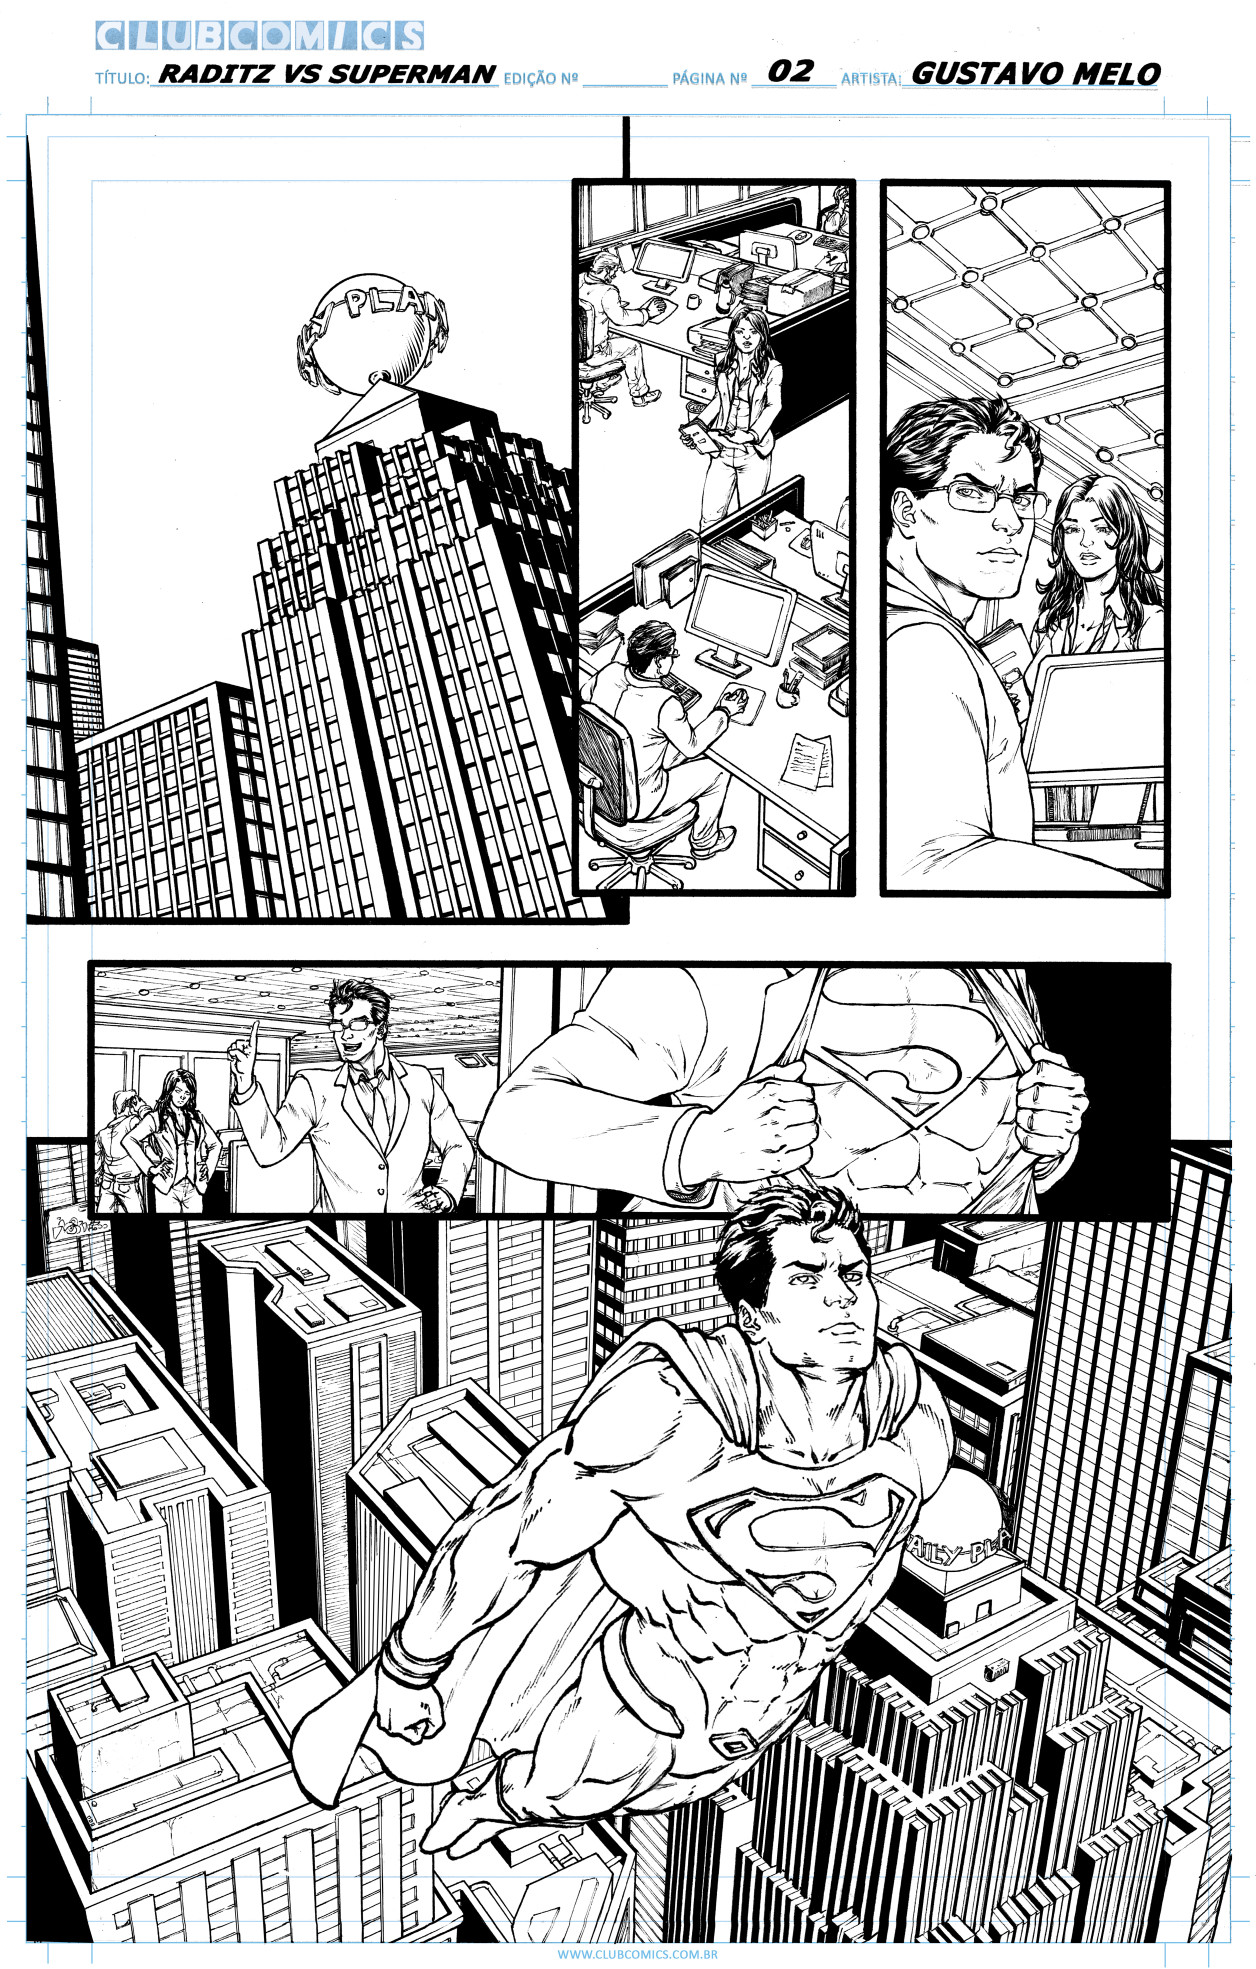 Gustavo melo raditz vs superman page 02 sample low